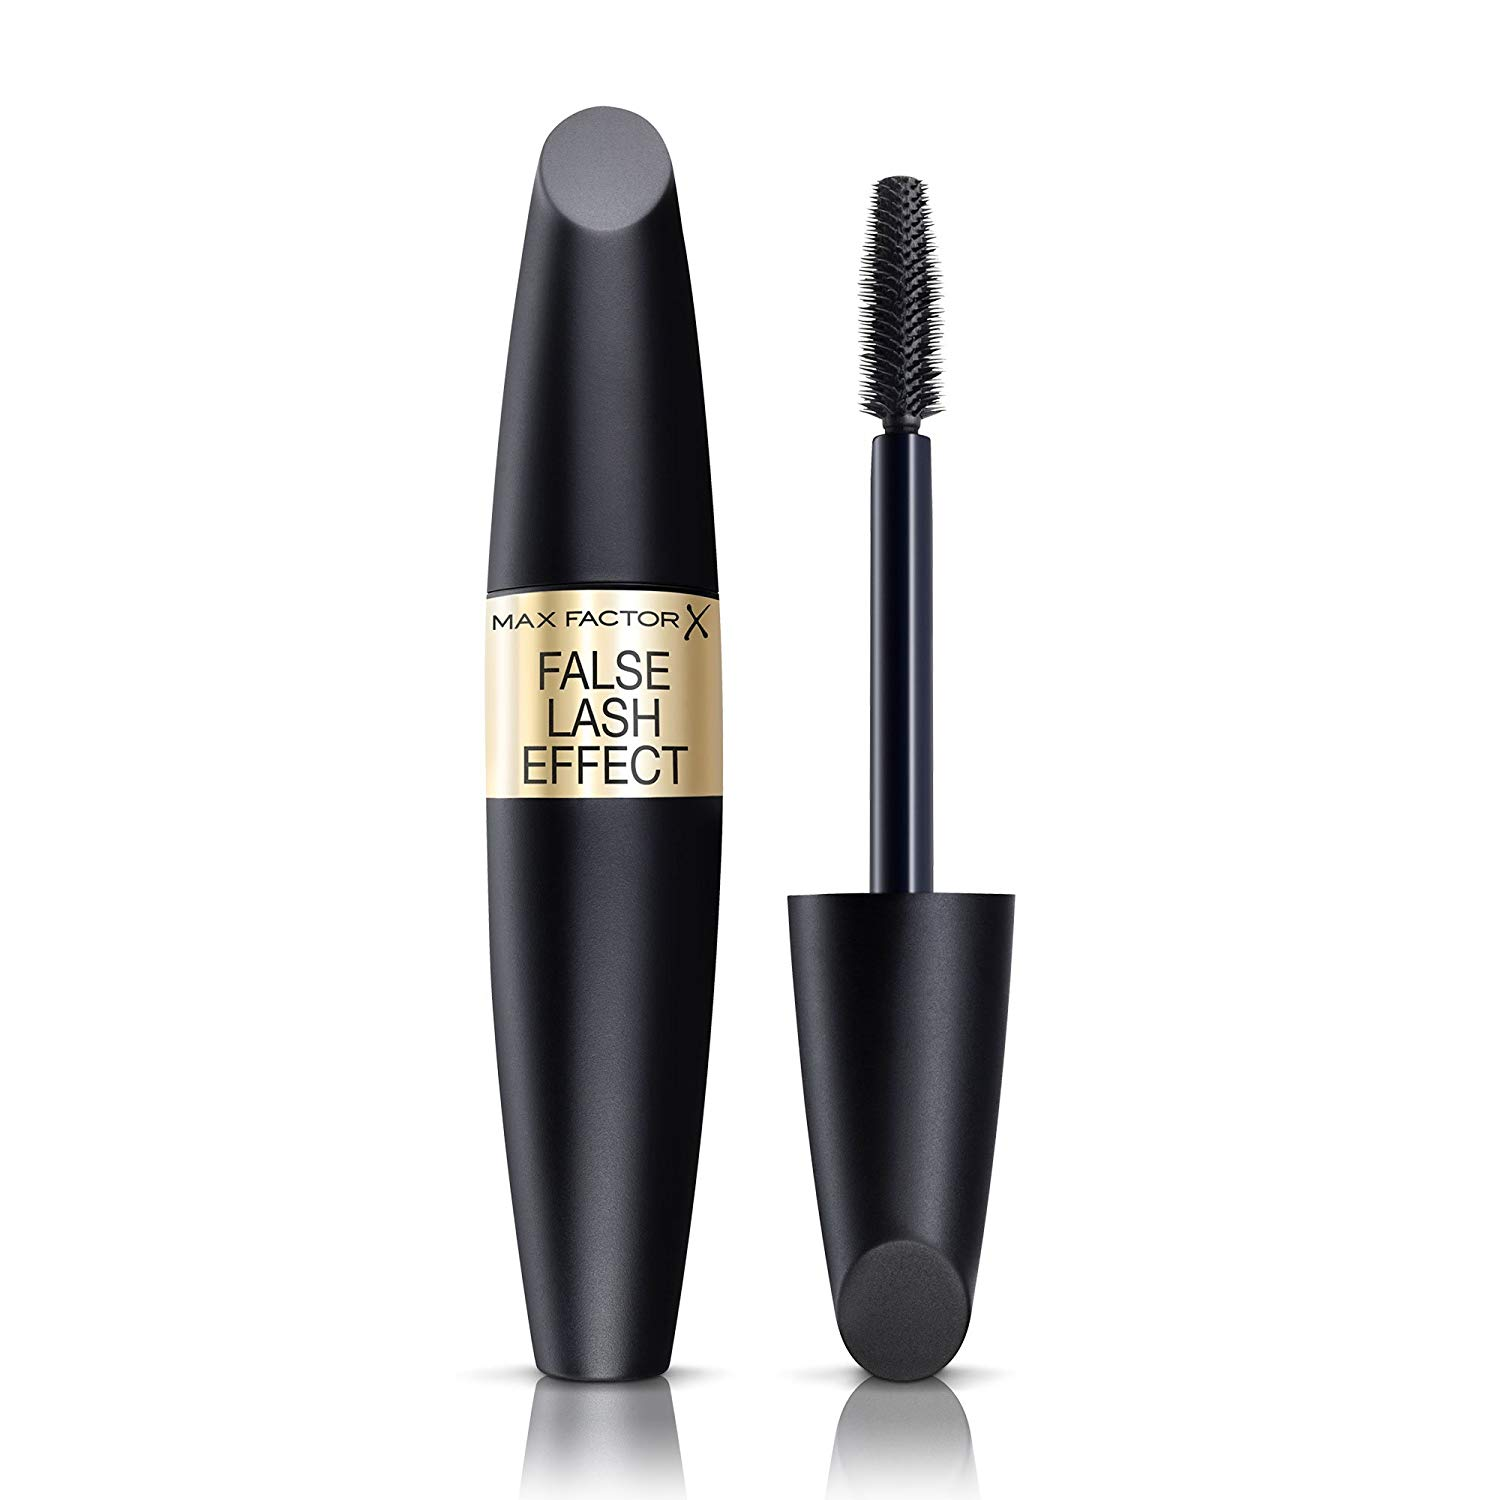 Max Factor False Lash Effect Volumising and Thickening Mascara